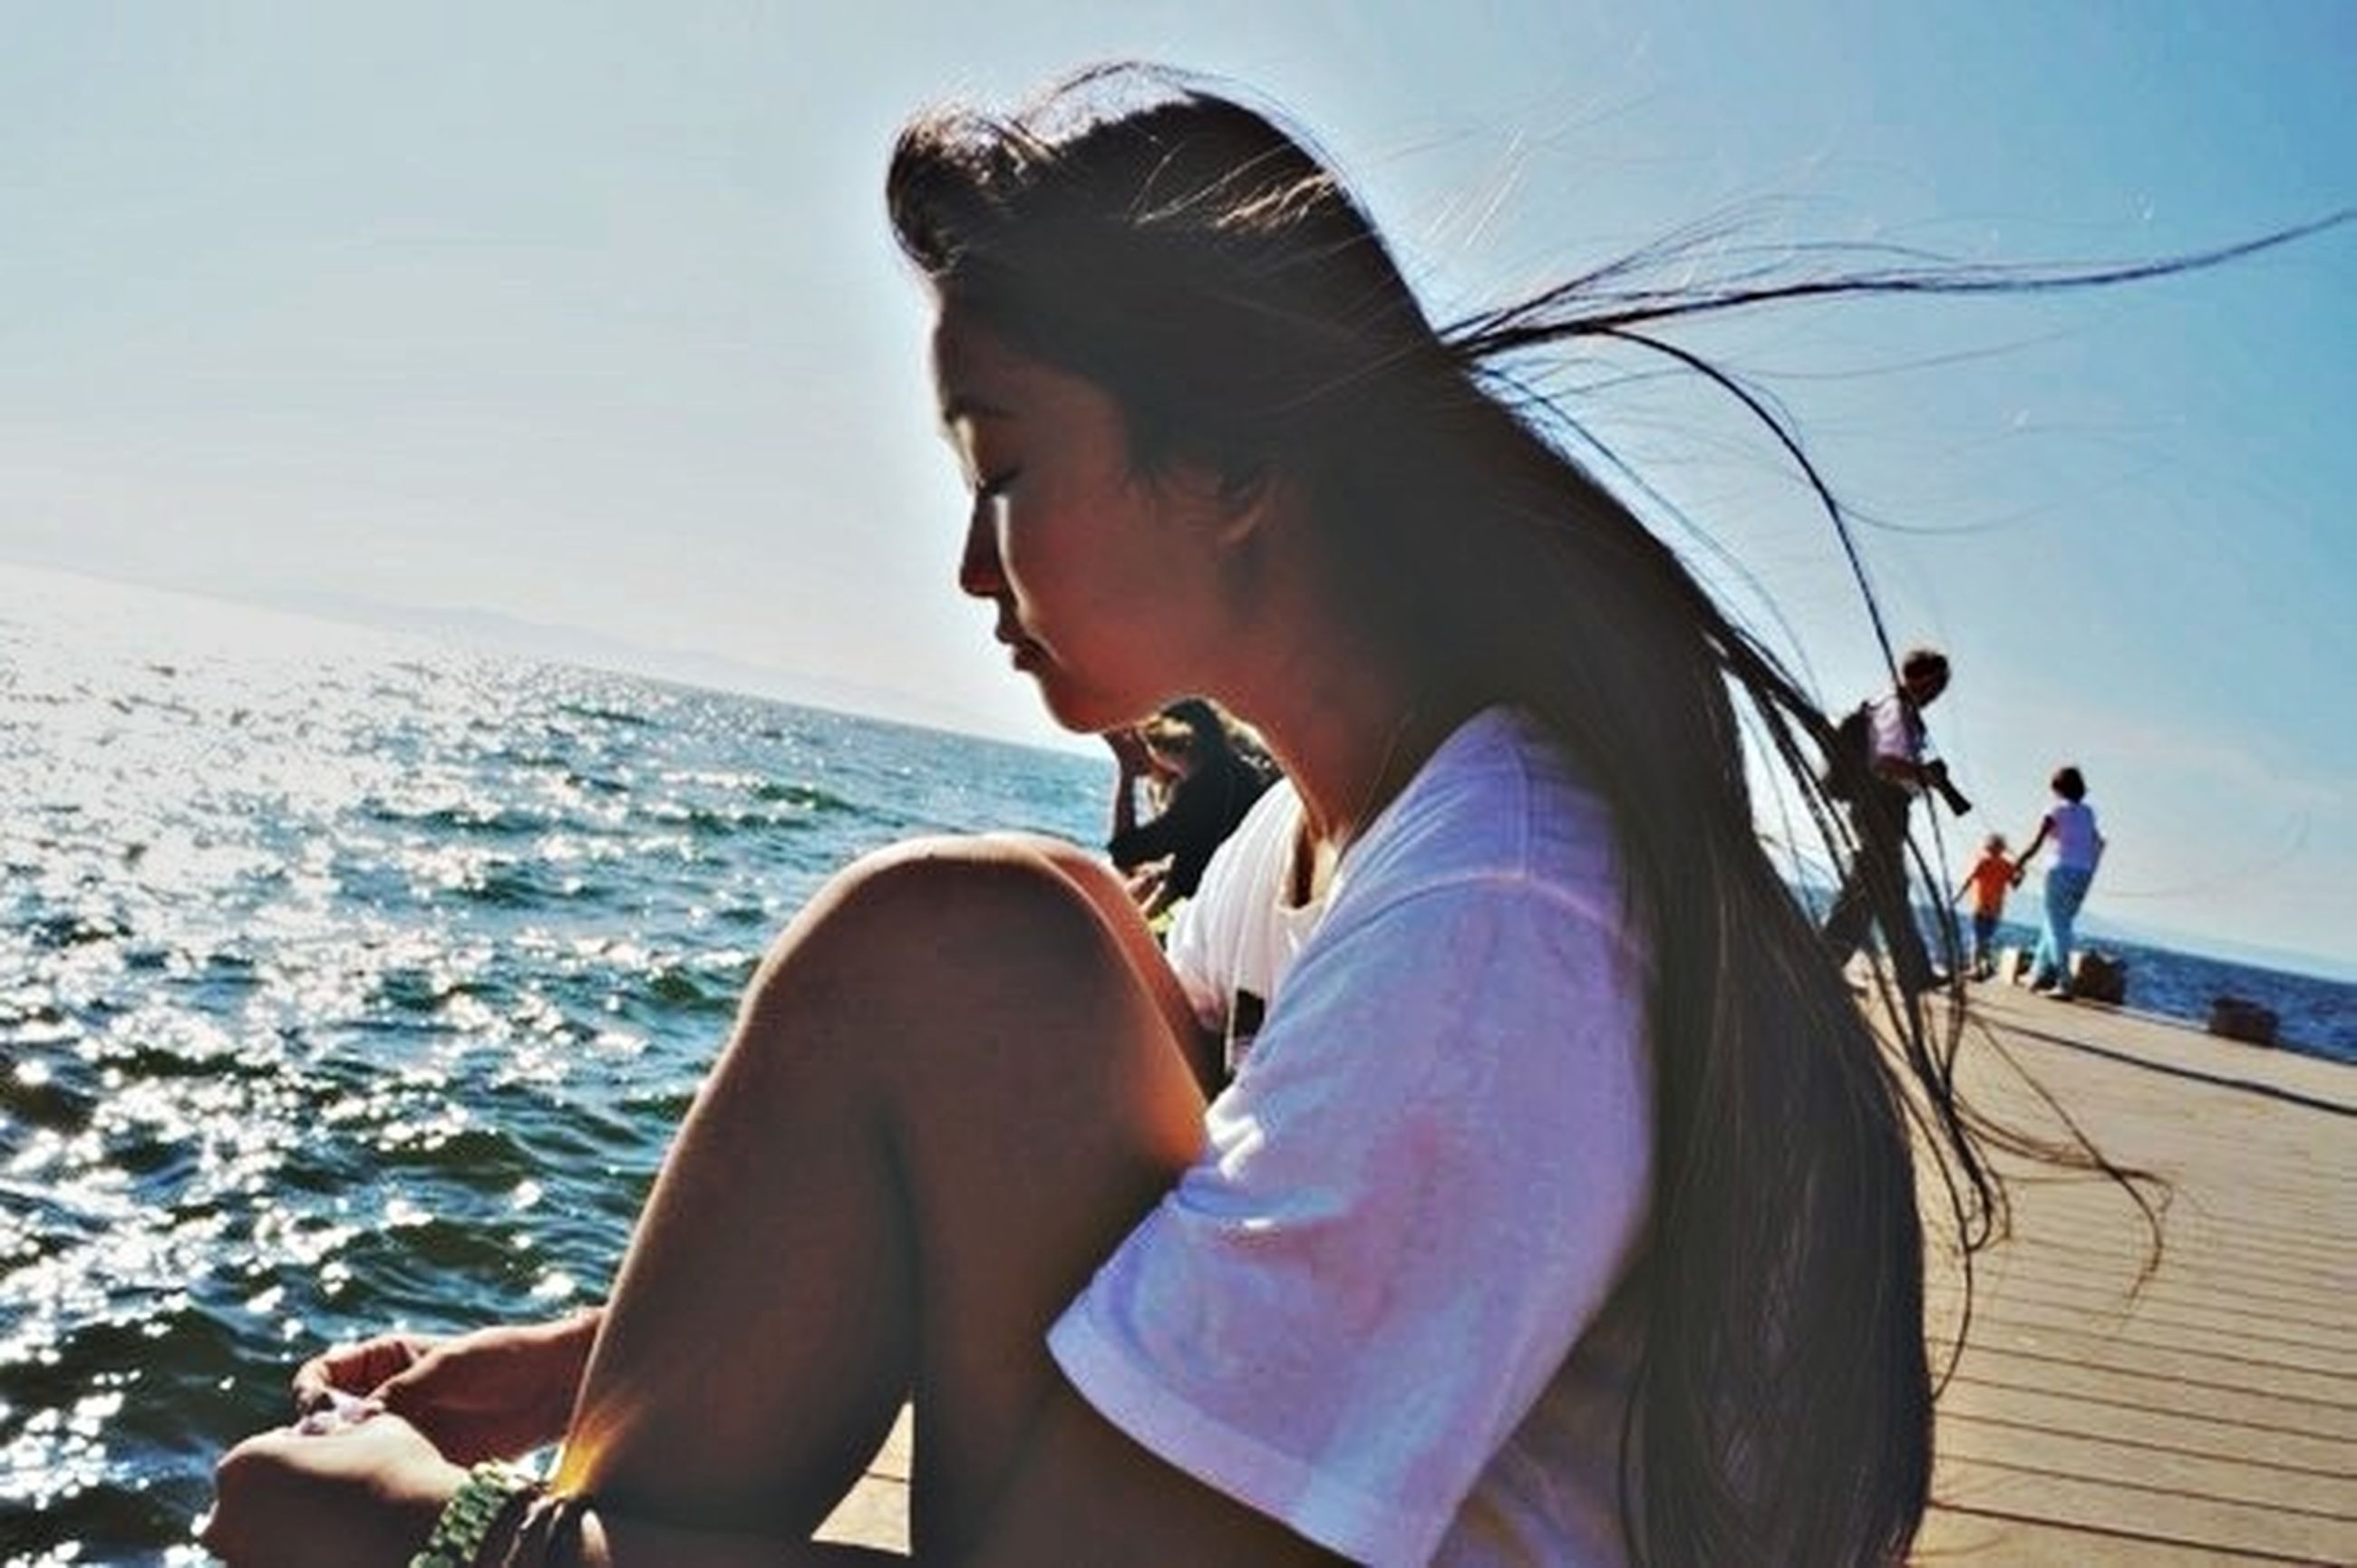 sea, lifestyles, leisure activity, young adult, water, vacations, young women, beach, tourism, tourist, sitting, person, sky, travel, casual clothing, relaxation, day